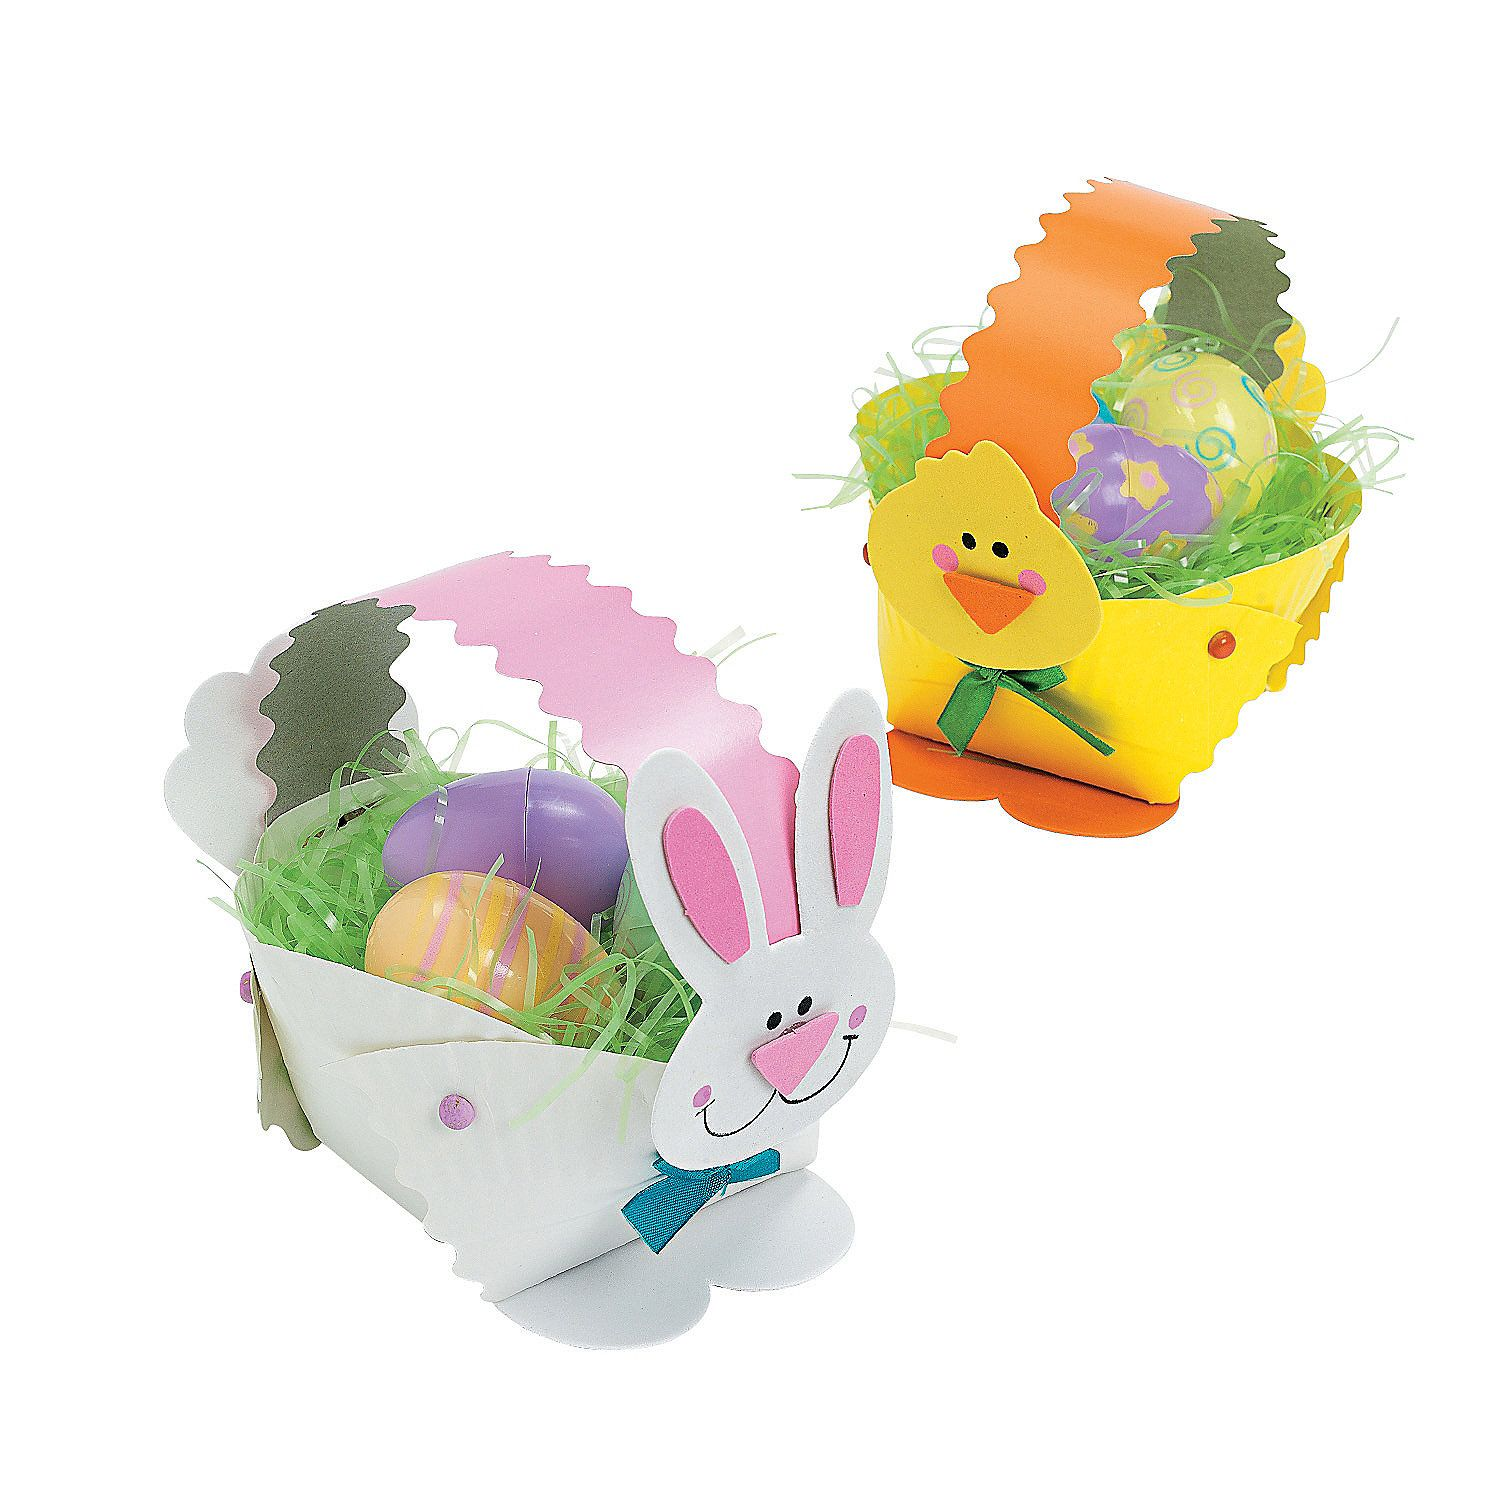 Paper plate bunny chick easter basket craft kit easter craft kits projects and easy craft ideas for kids find easter crafts for kids and fun craft supplies for the whole family negle Image collections